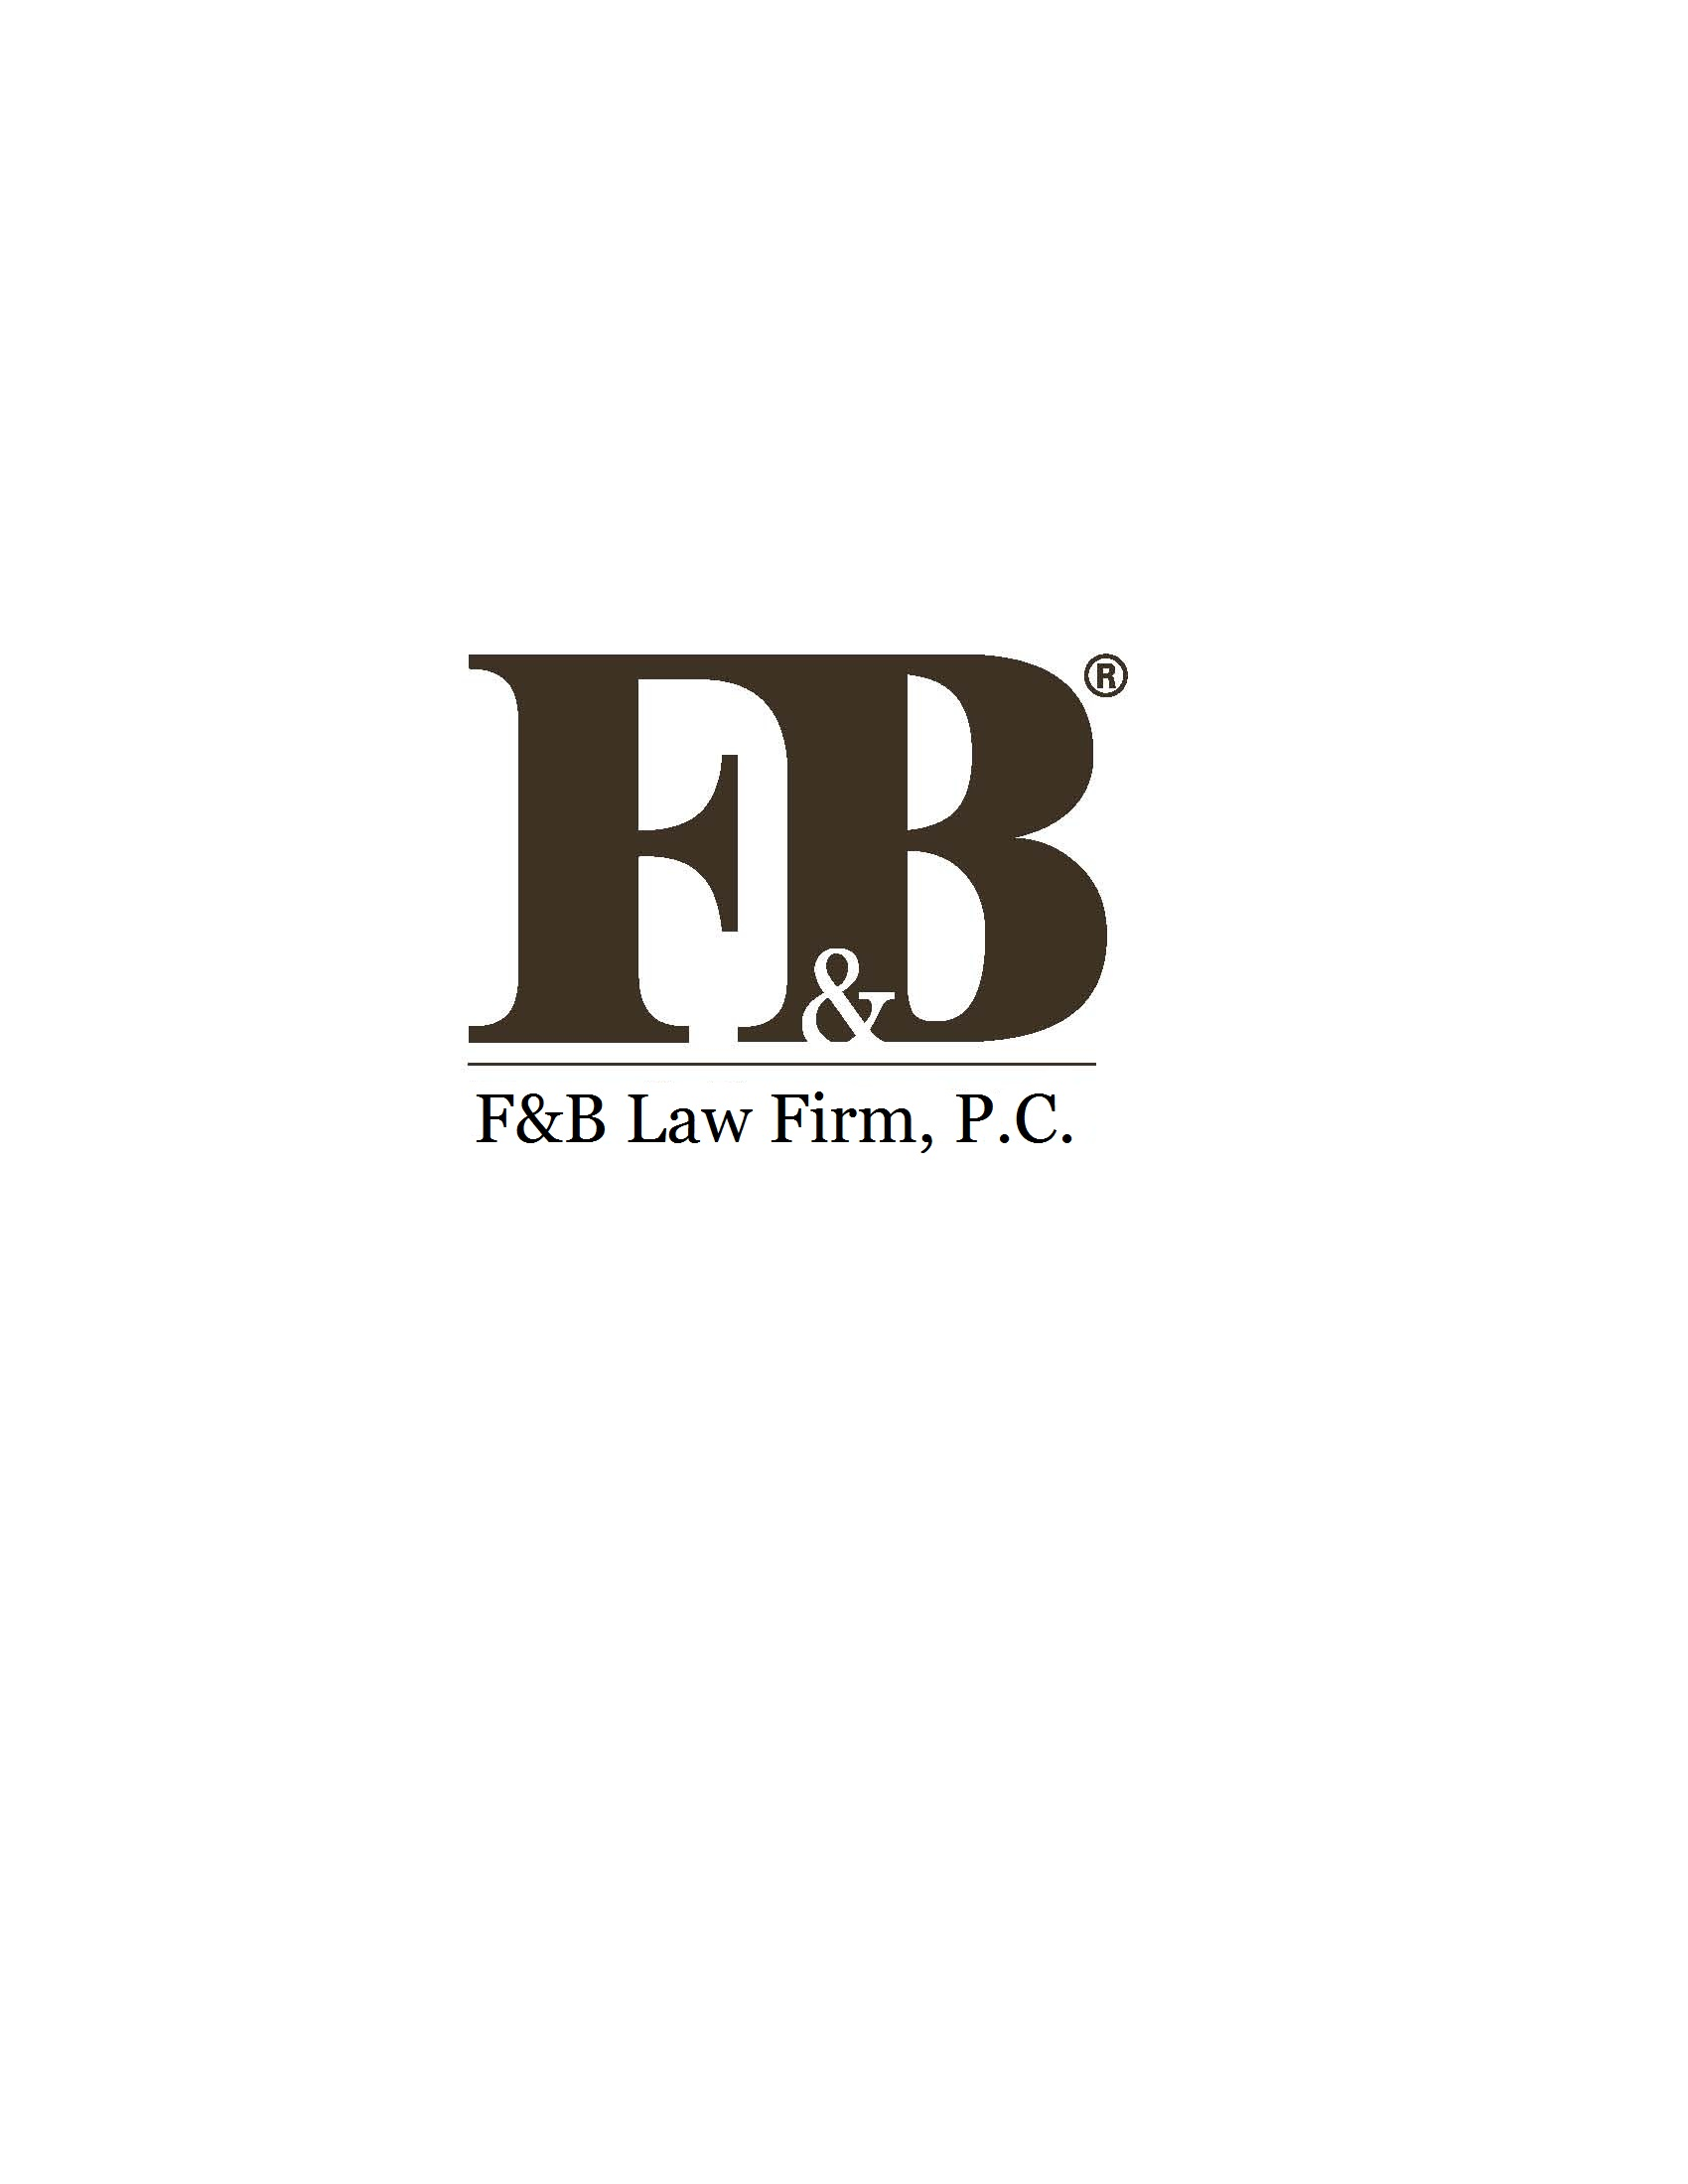 F & B Law Firm, P.C.